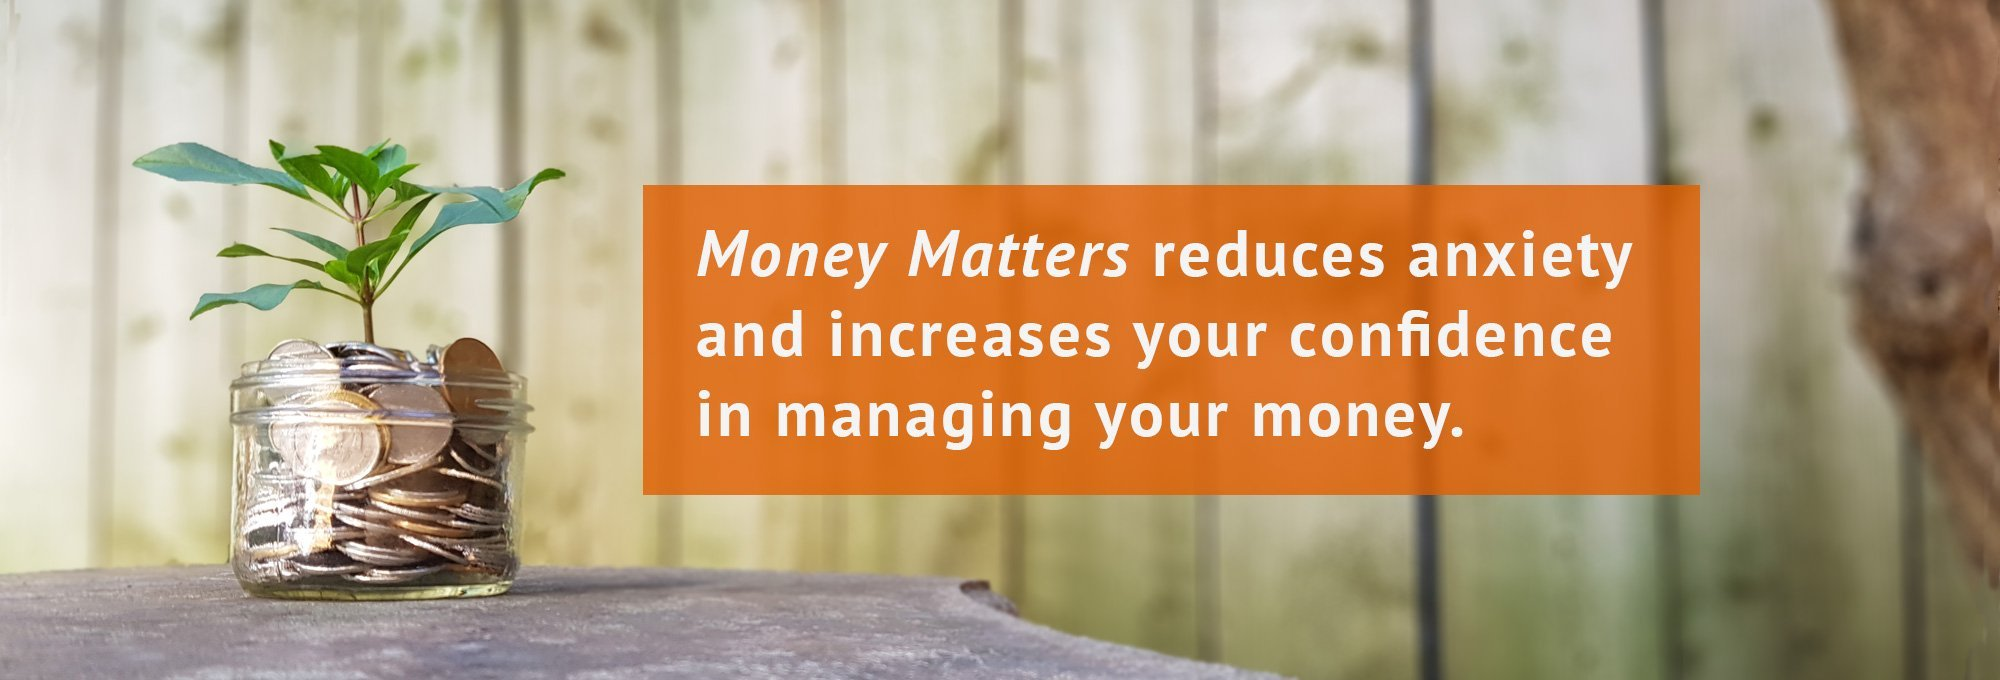 Money Matters reduces anxiety and increases your confidence in managing your money